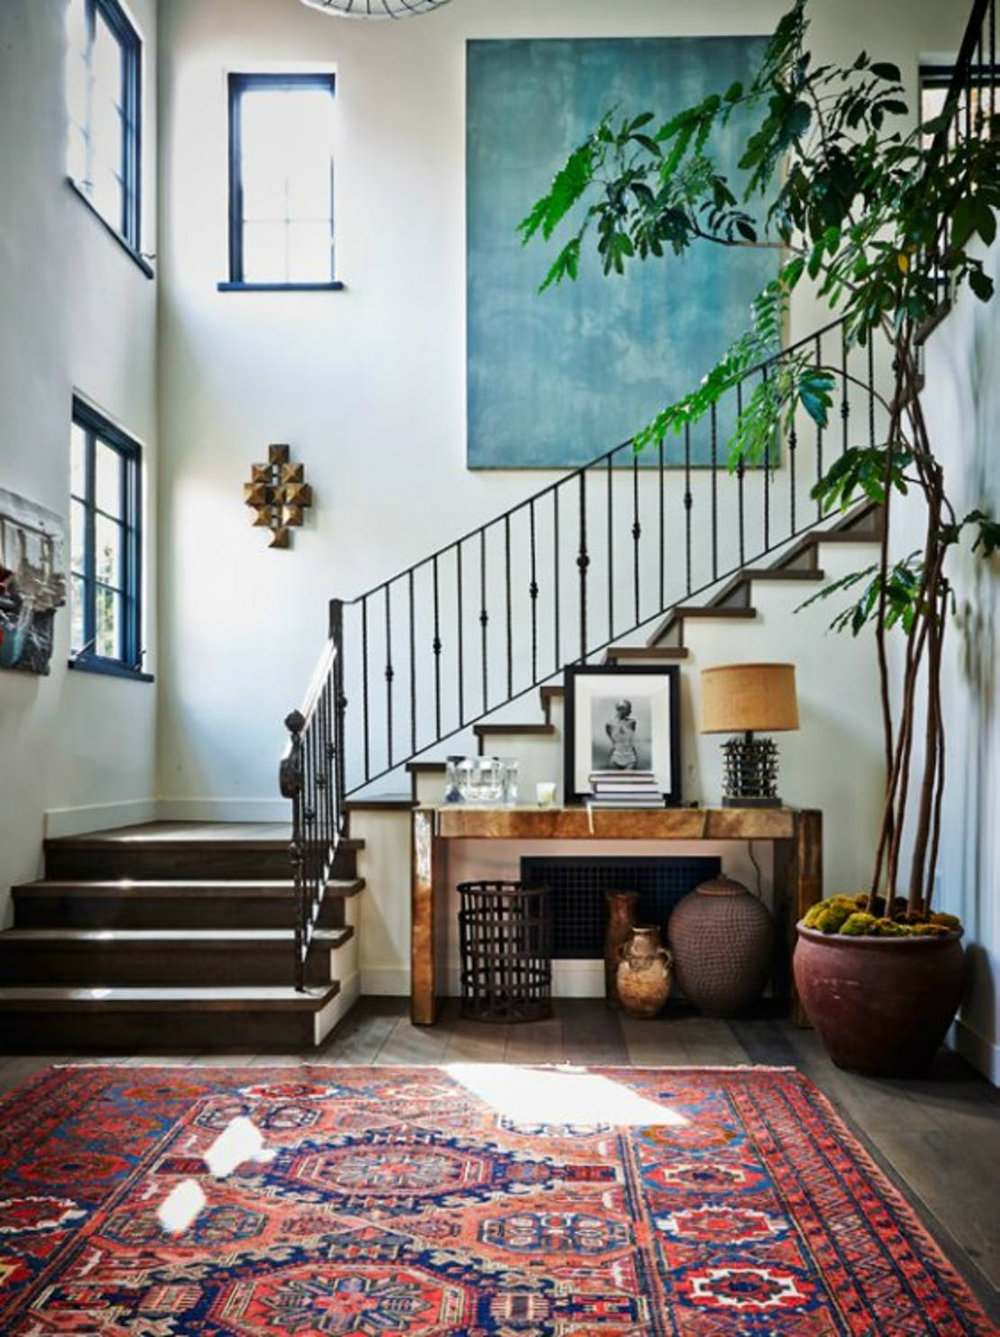 6 Luxurious Stairwell Designs You'll Love 07 Stairwell Designs 6 Luxurious Stairwell Designs You'll Love 6 Luxurious Stairwell Designs Youll Love 07